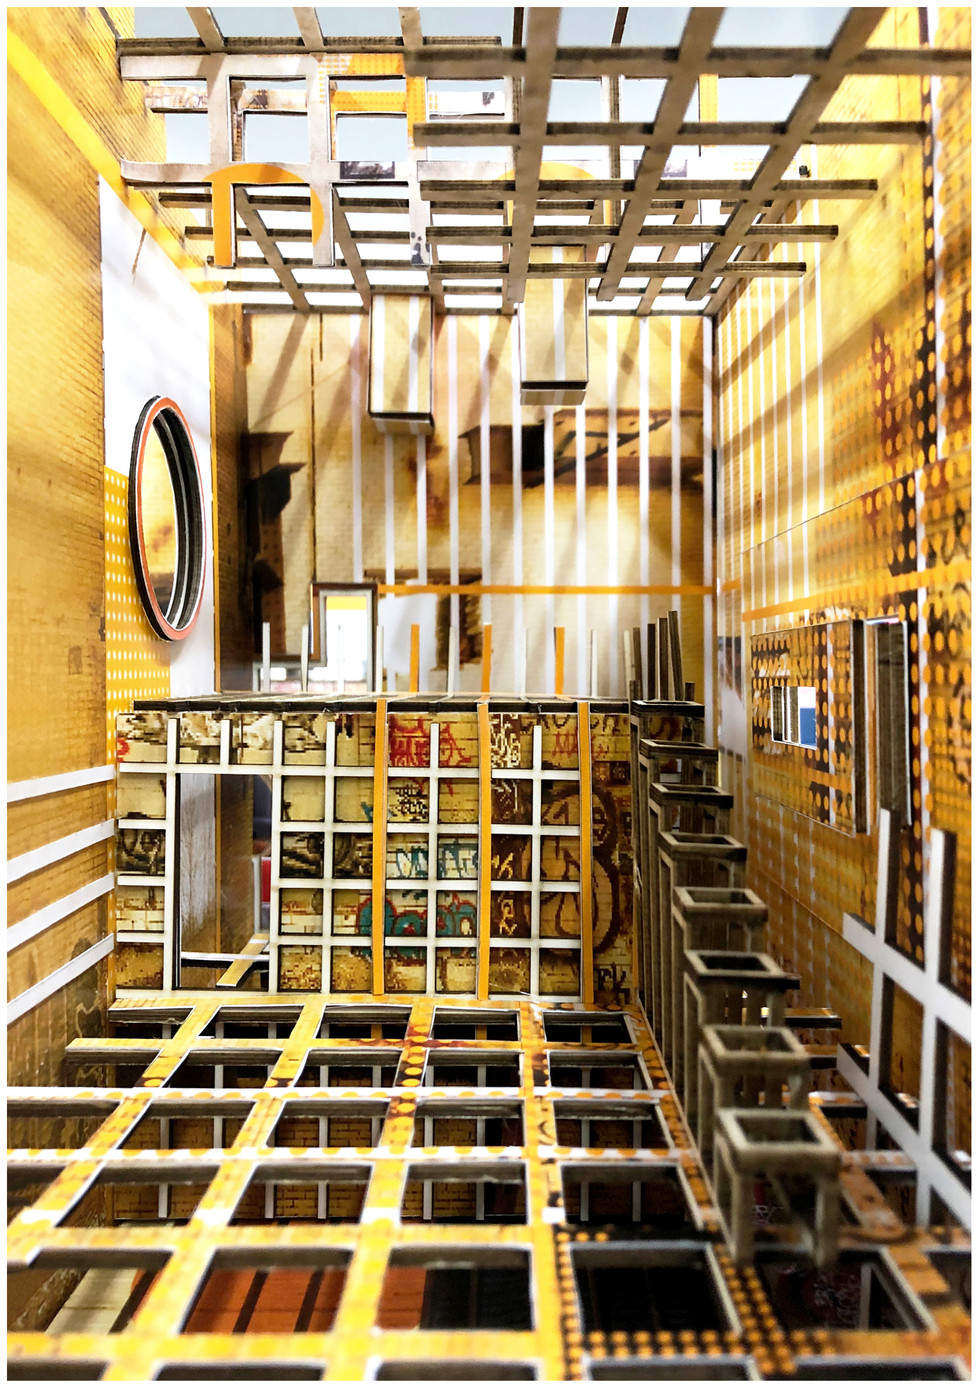 08 - PHYSICAL MODEL GALLERY INTERIOR.jpg